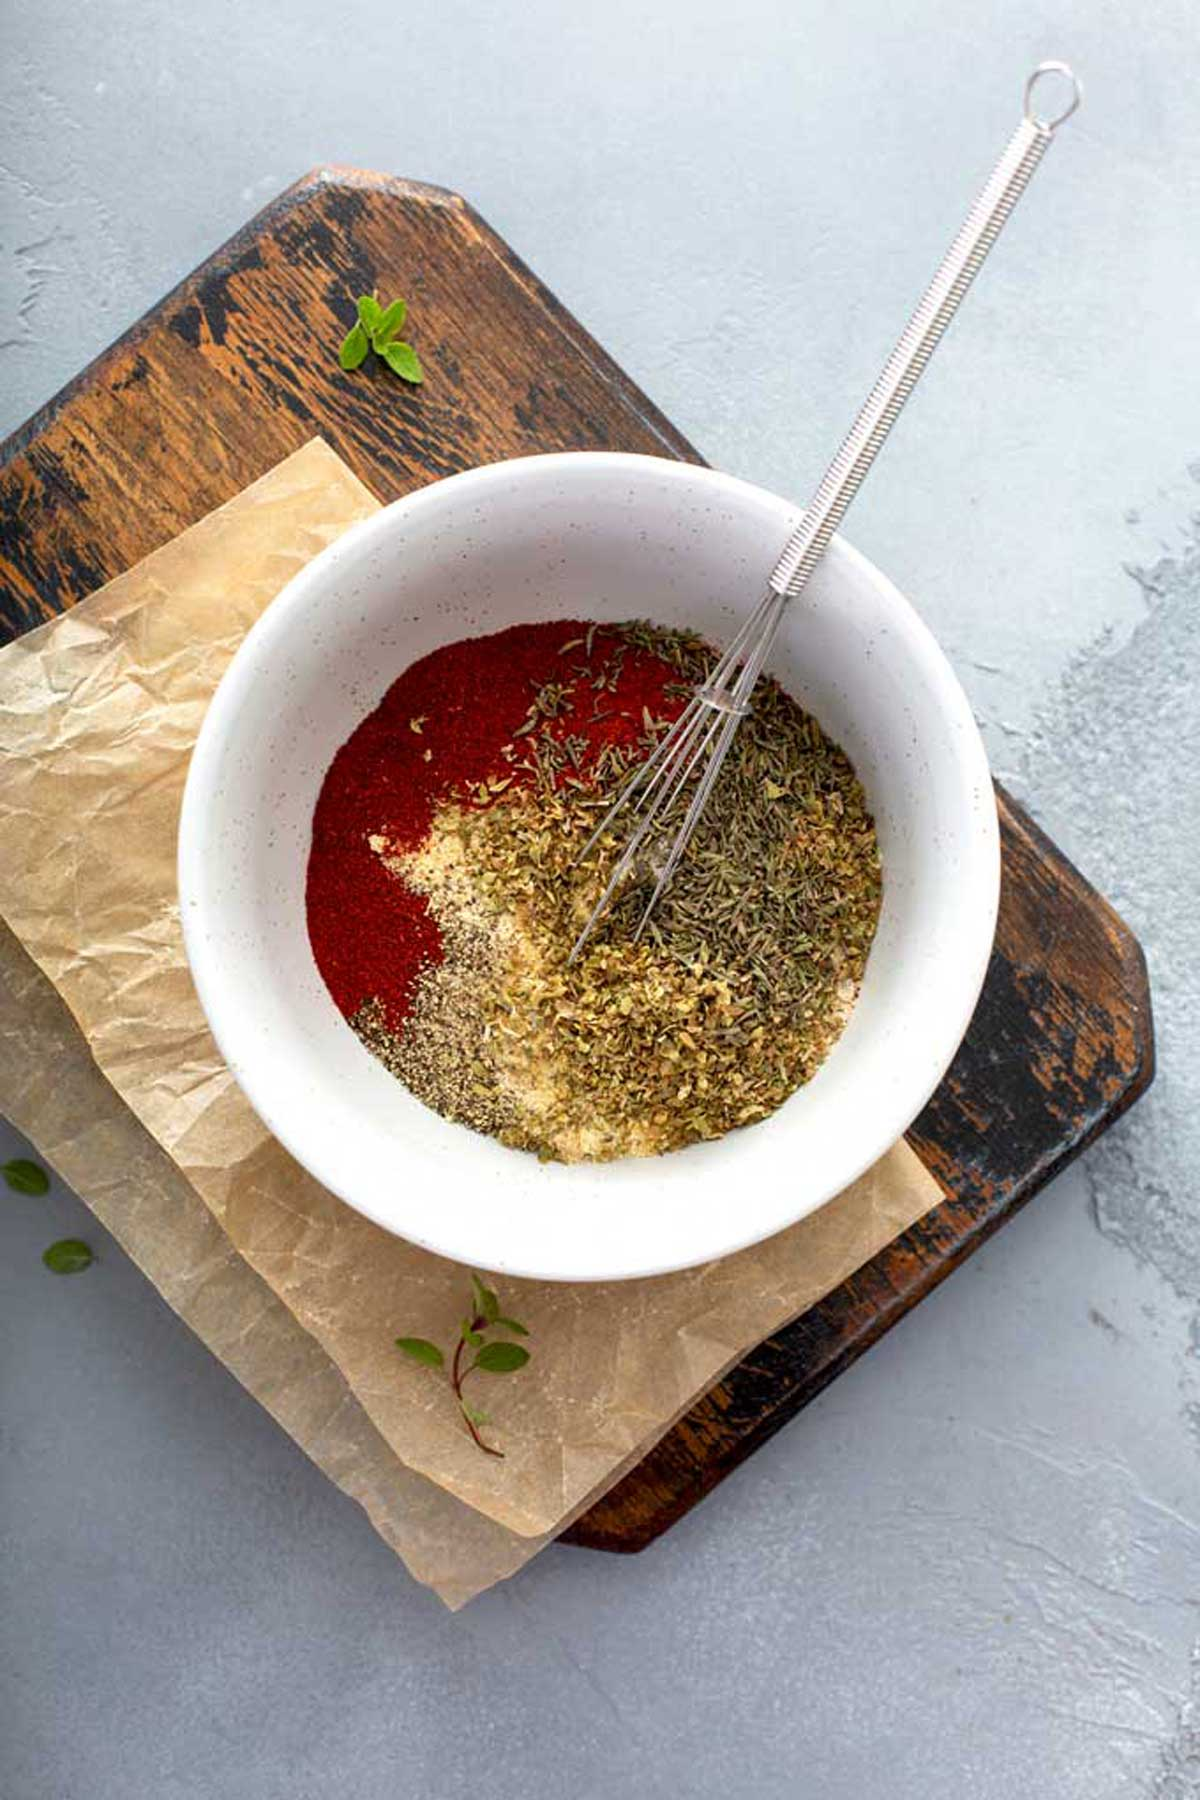 A combination of different spices getting whisked in a small bowl.